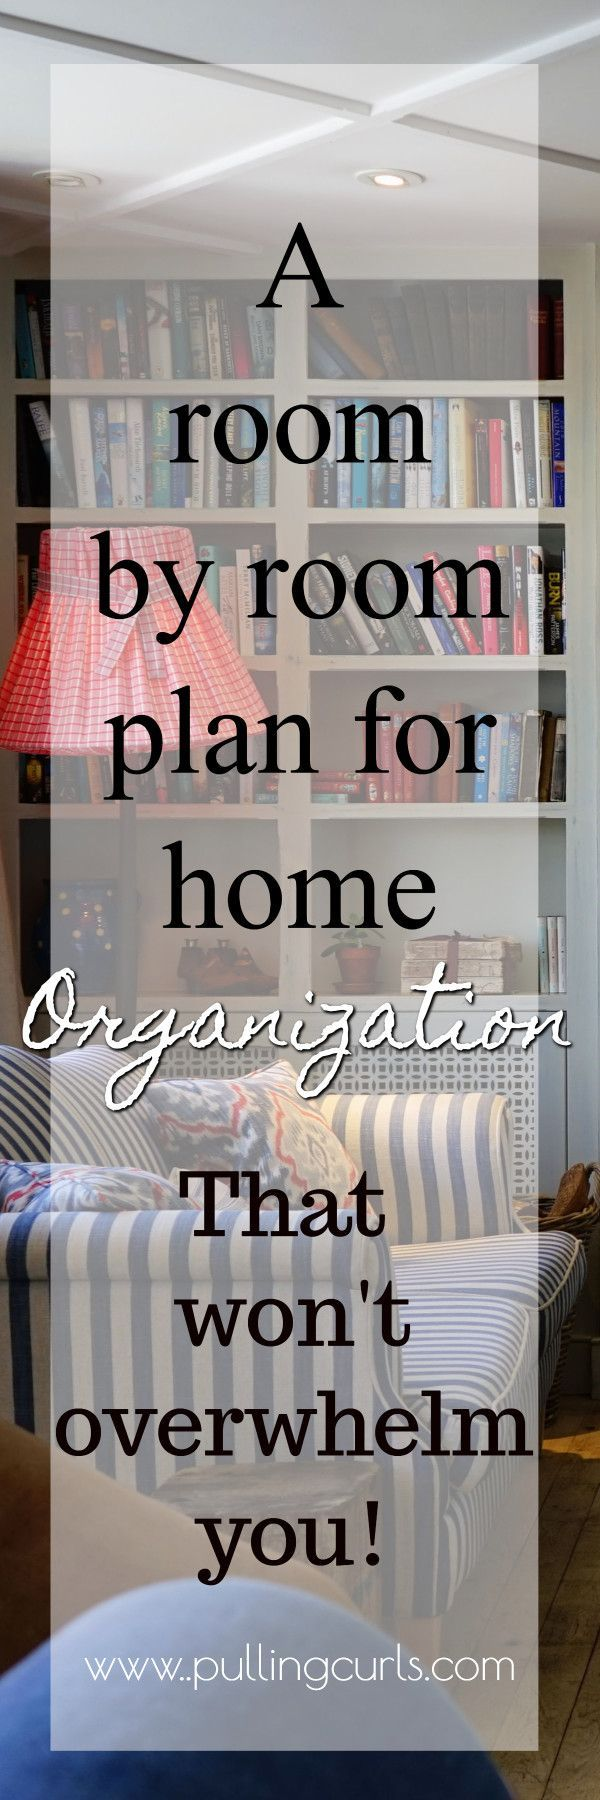 Home Organization Ideas. 3164 best Organizing Ideas for the Home images on Pinterest